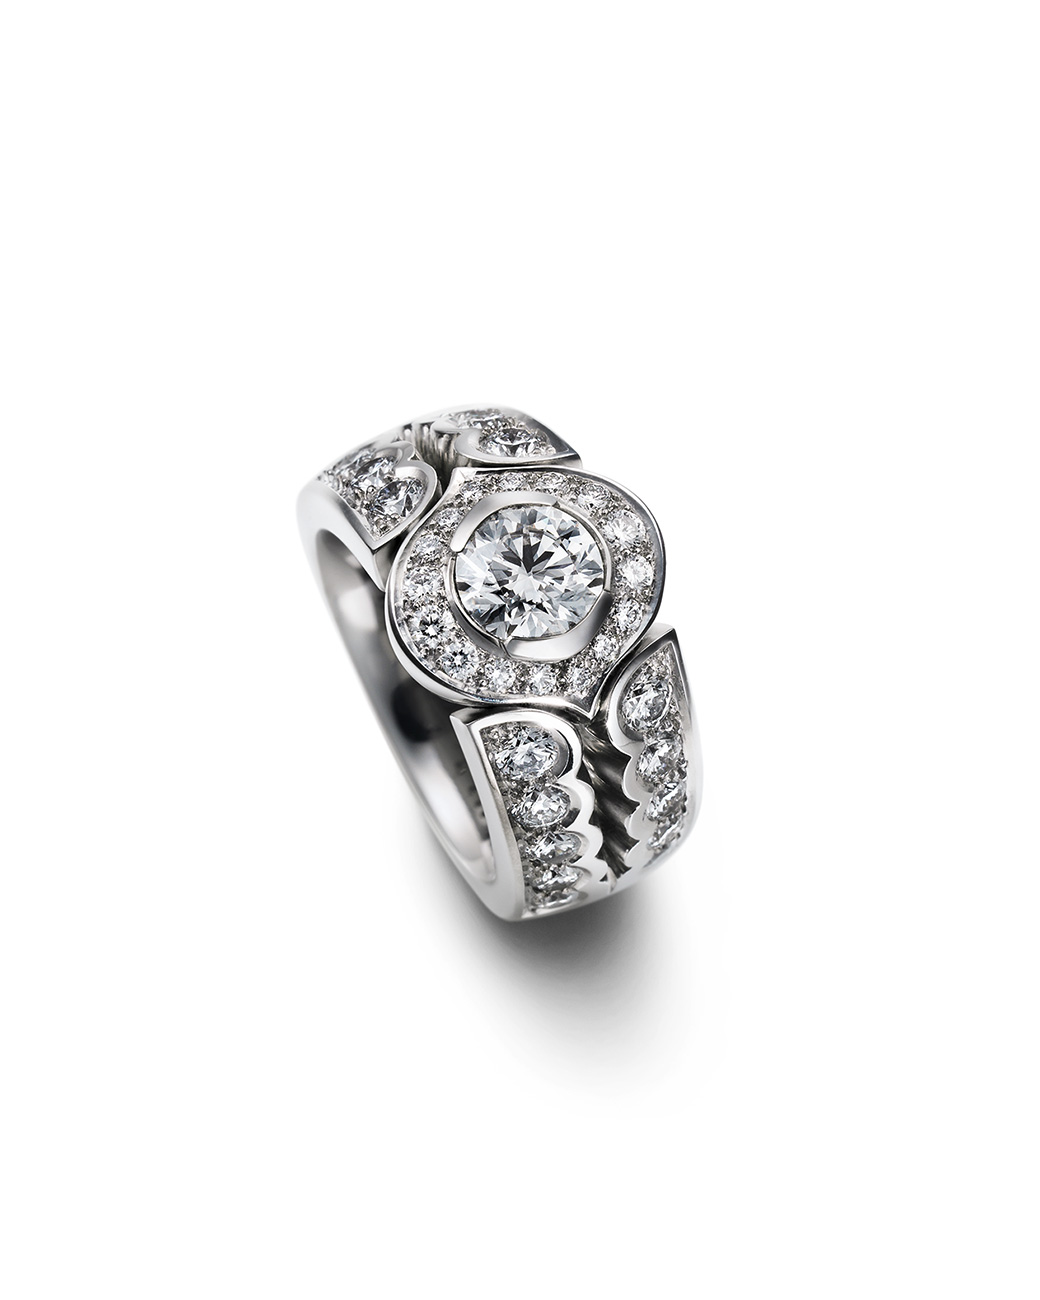 Ring-Messerer Juwelier-Diamanten